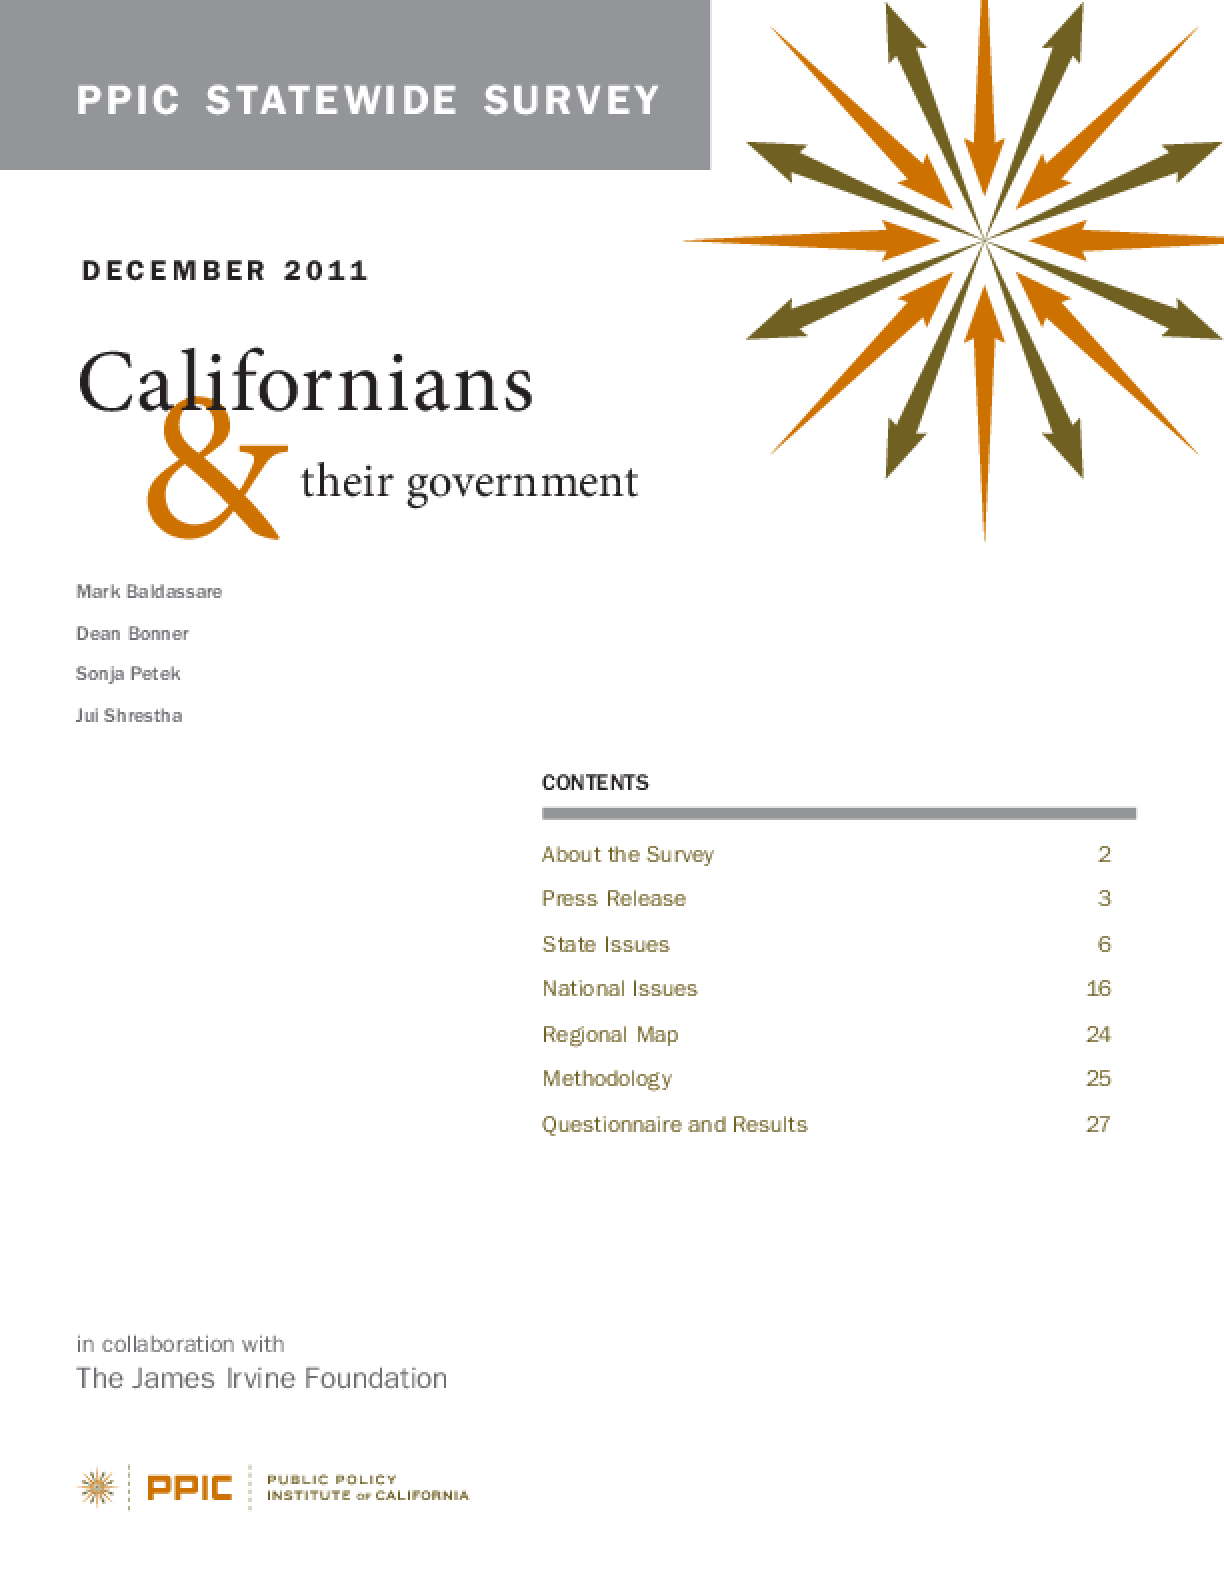 PPIC Statewide Survey: Californians and Their Government